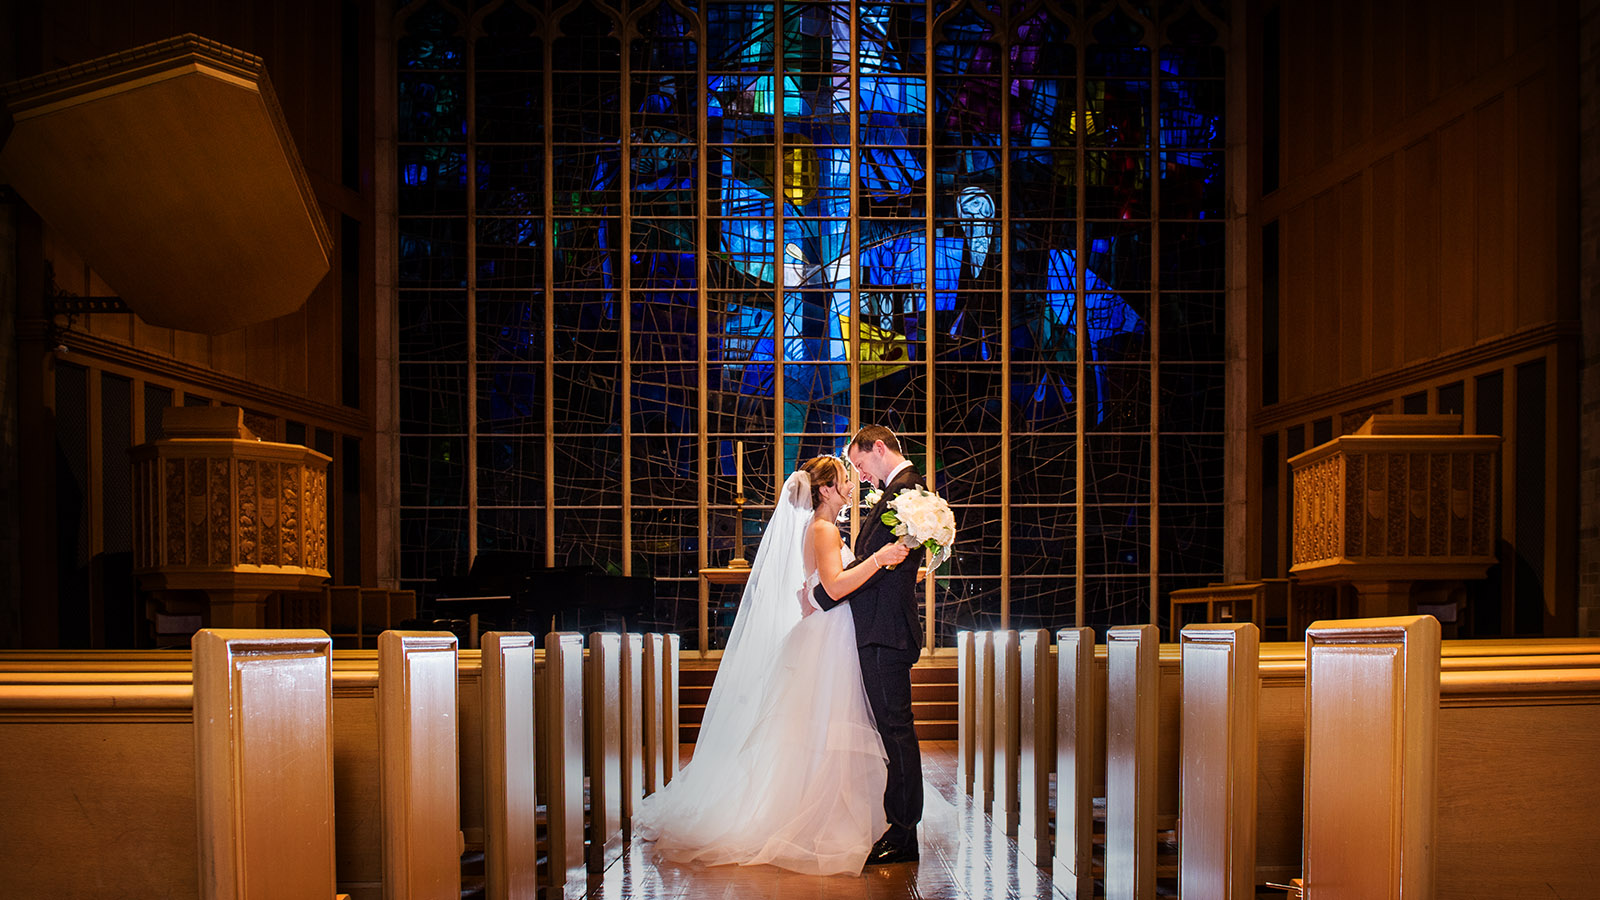 Bride Groom Wedding Portrait Alice Millar Chapel Aisle